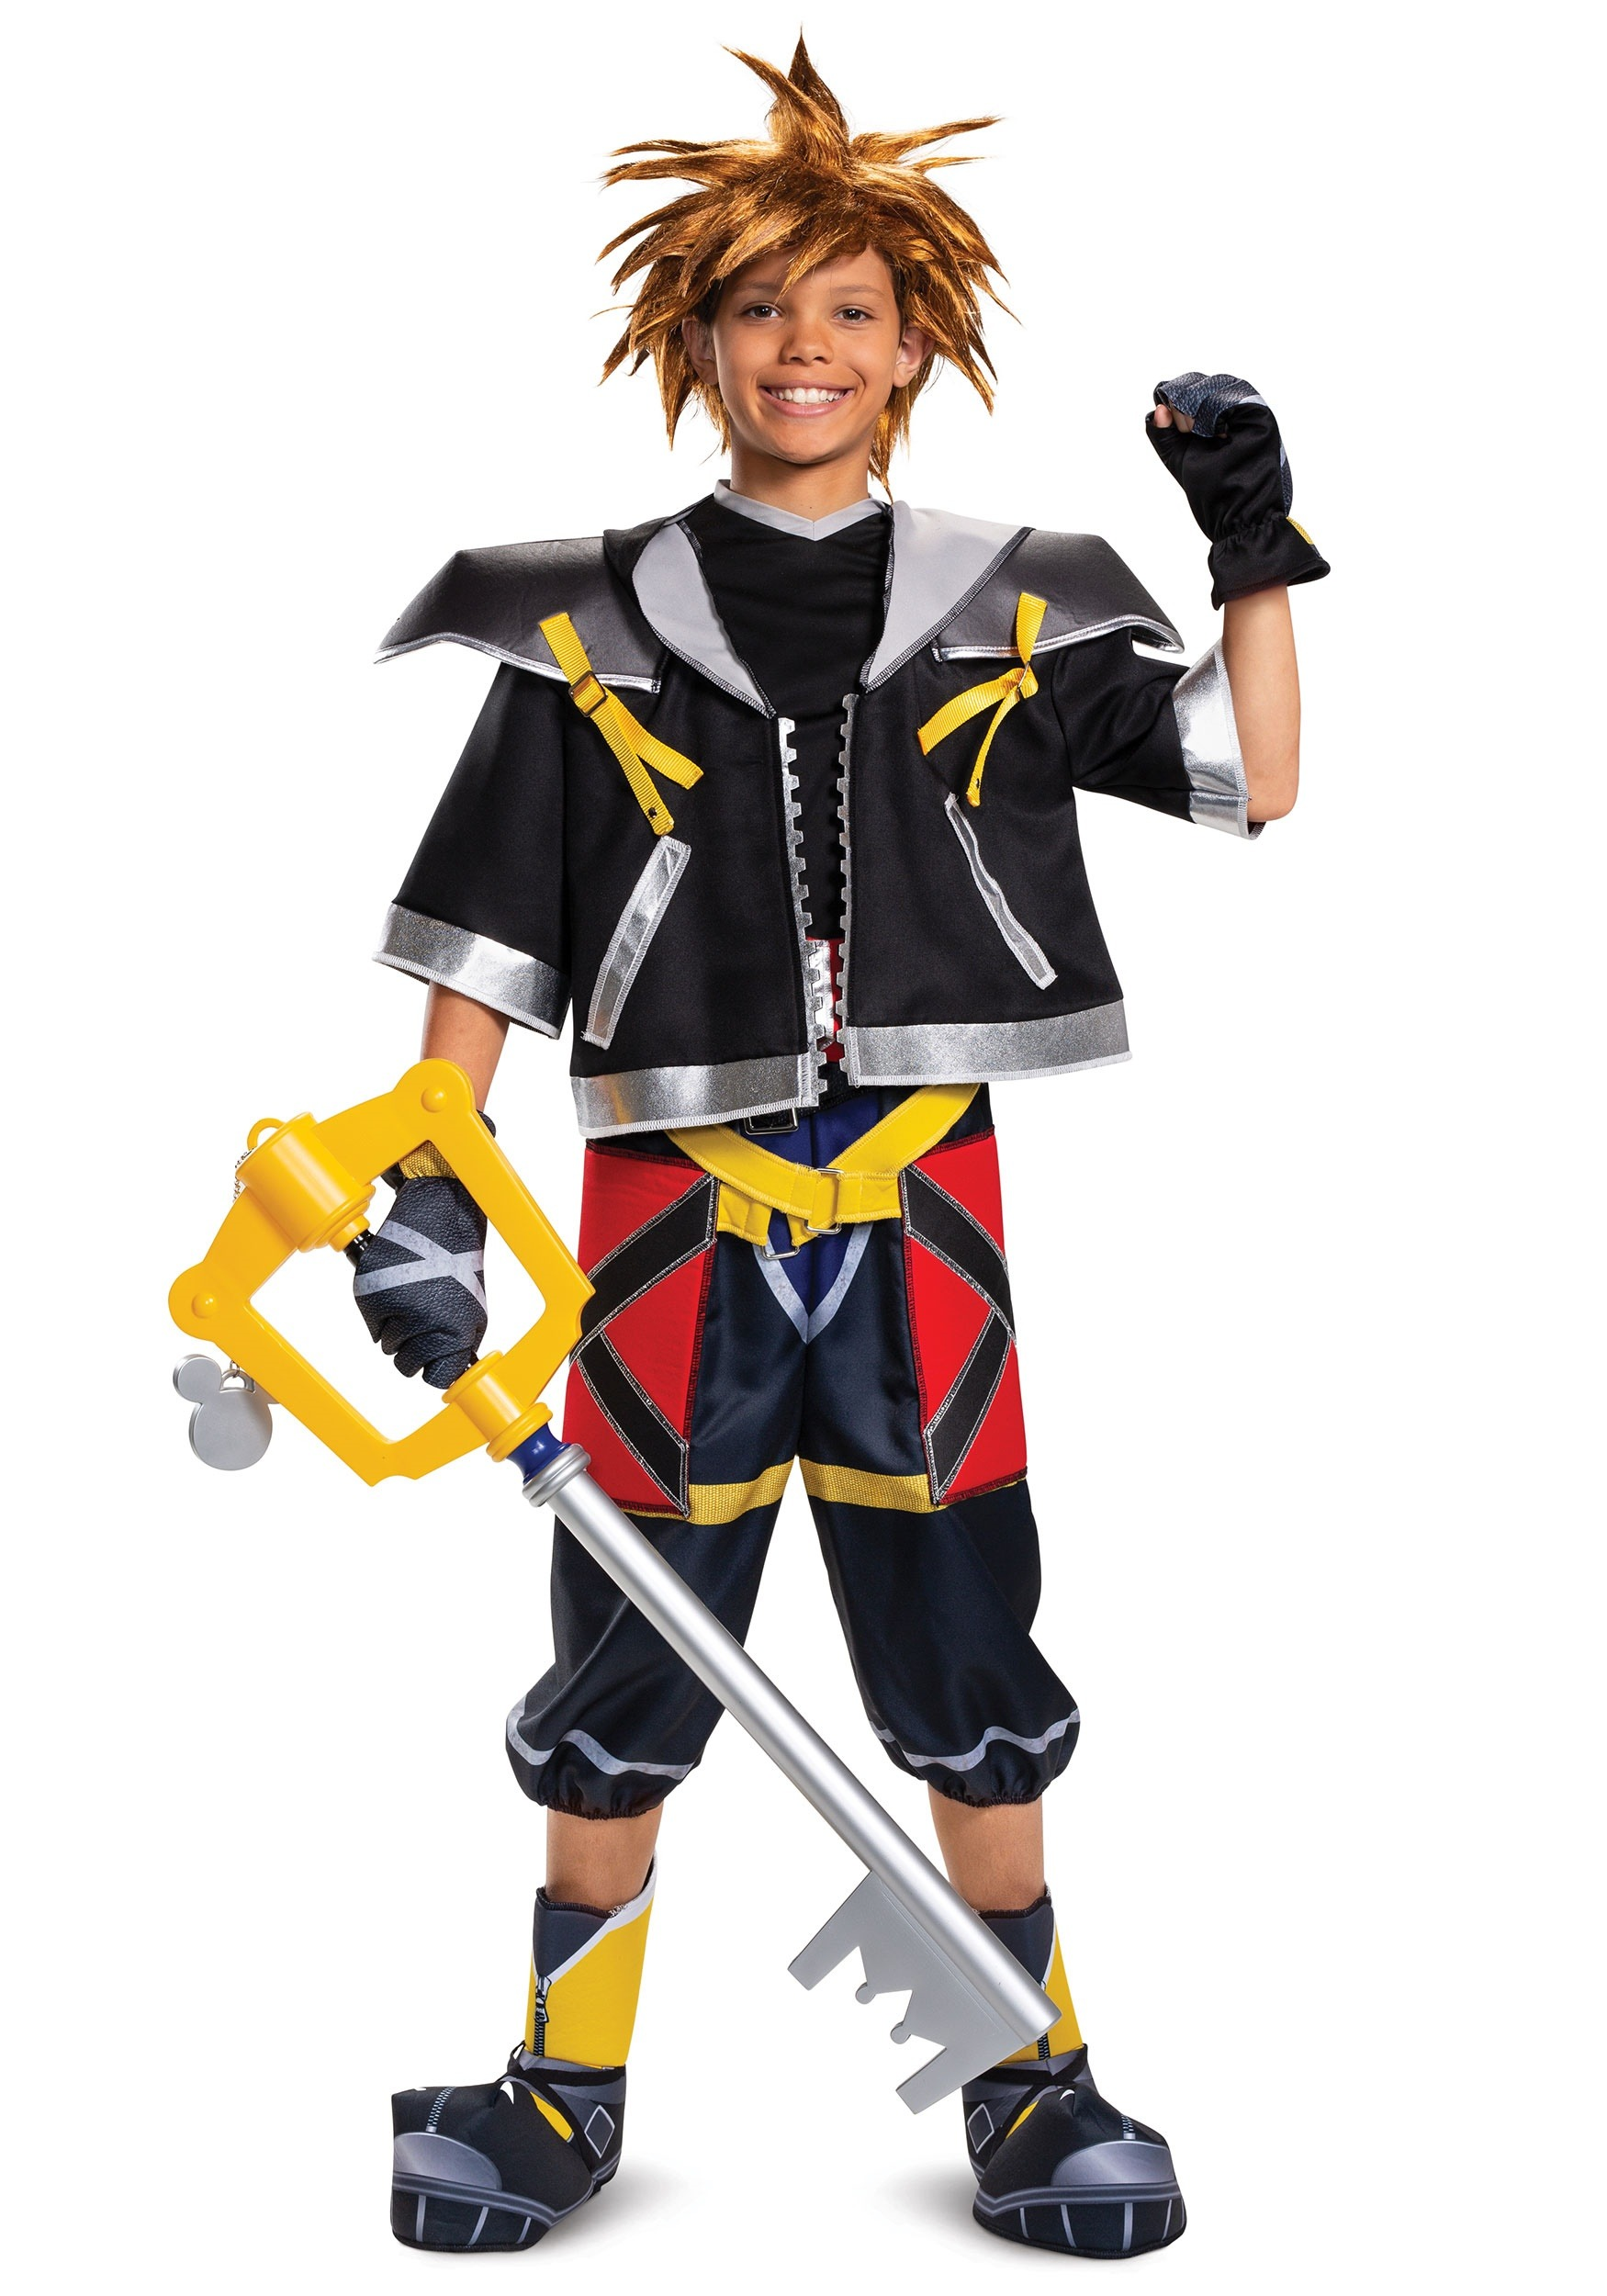 Kingdom Hearts Teen Sora Deluxe Costume  sc 1 st  Halloween Costumes & Kingdom Hearts Sora Deluxe Costume for Teens